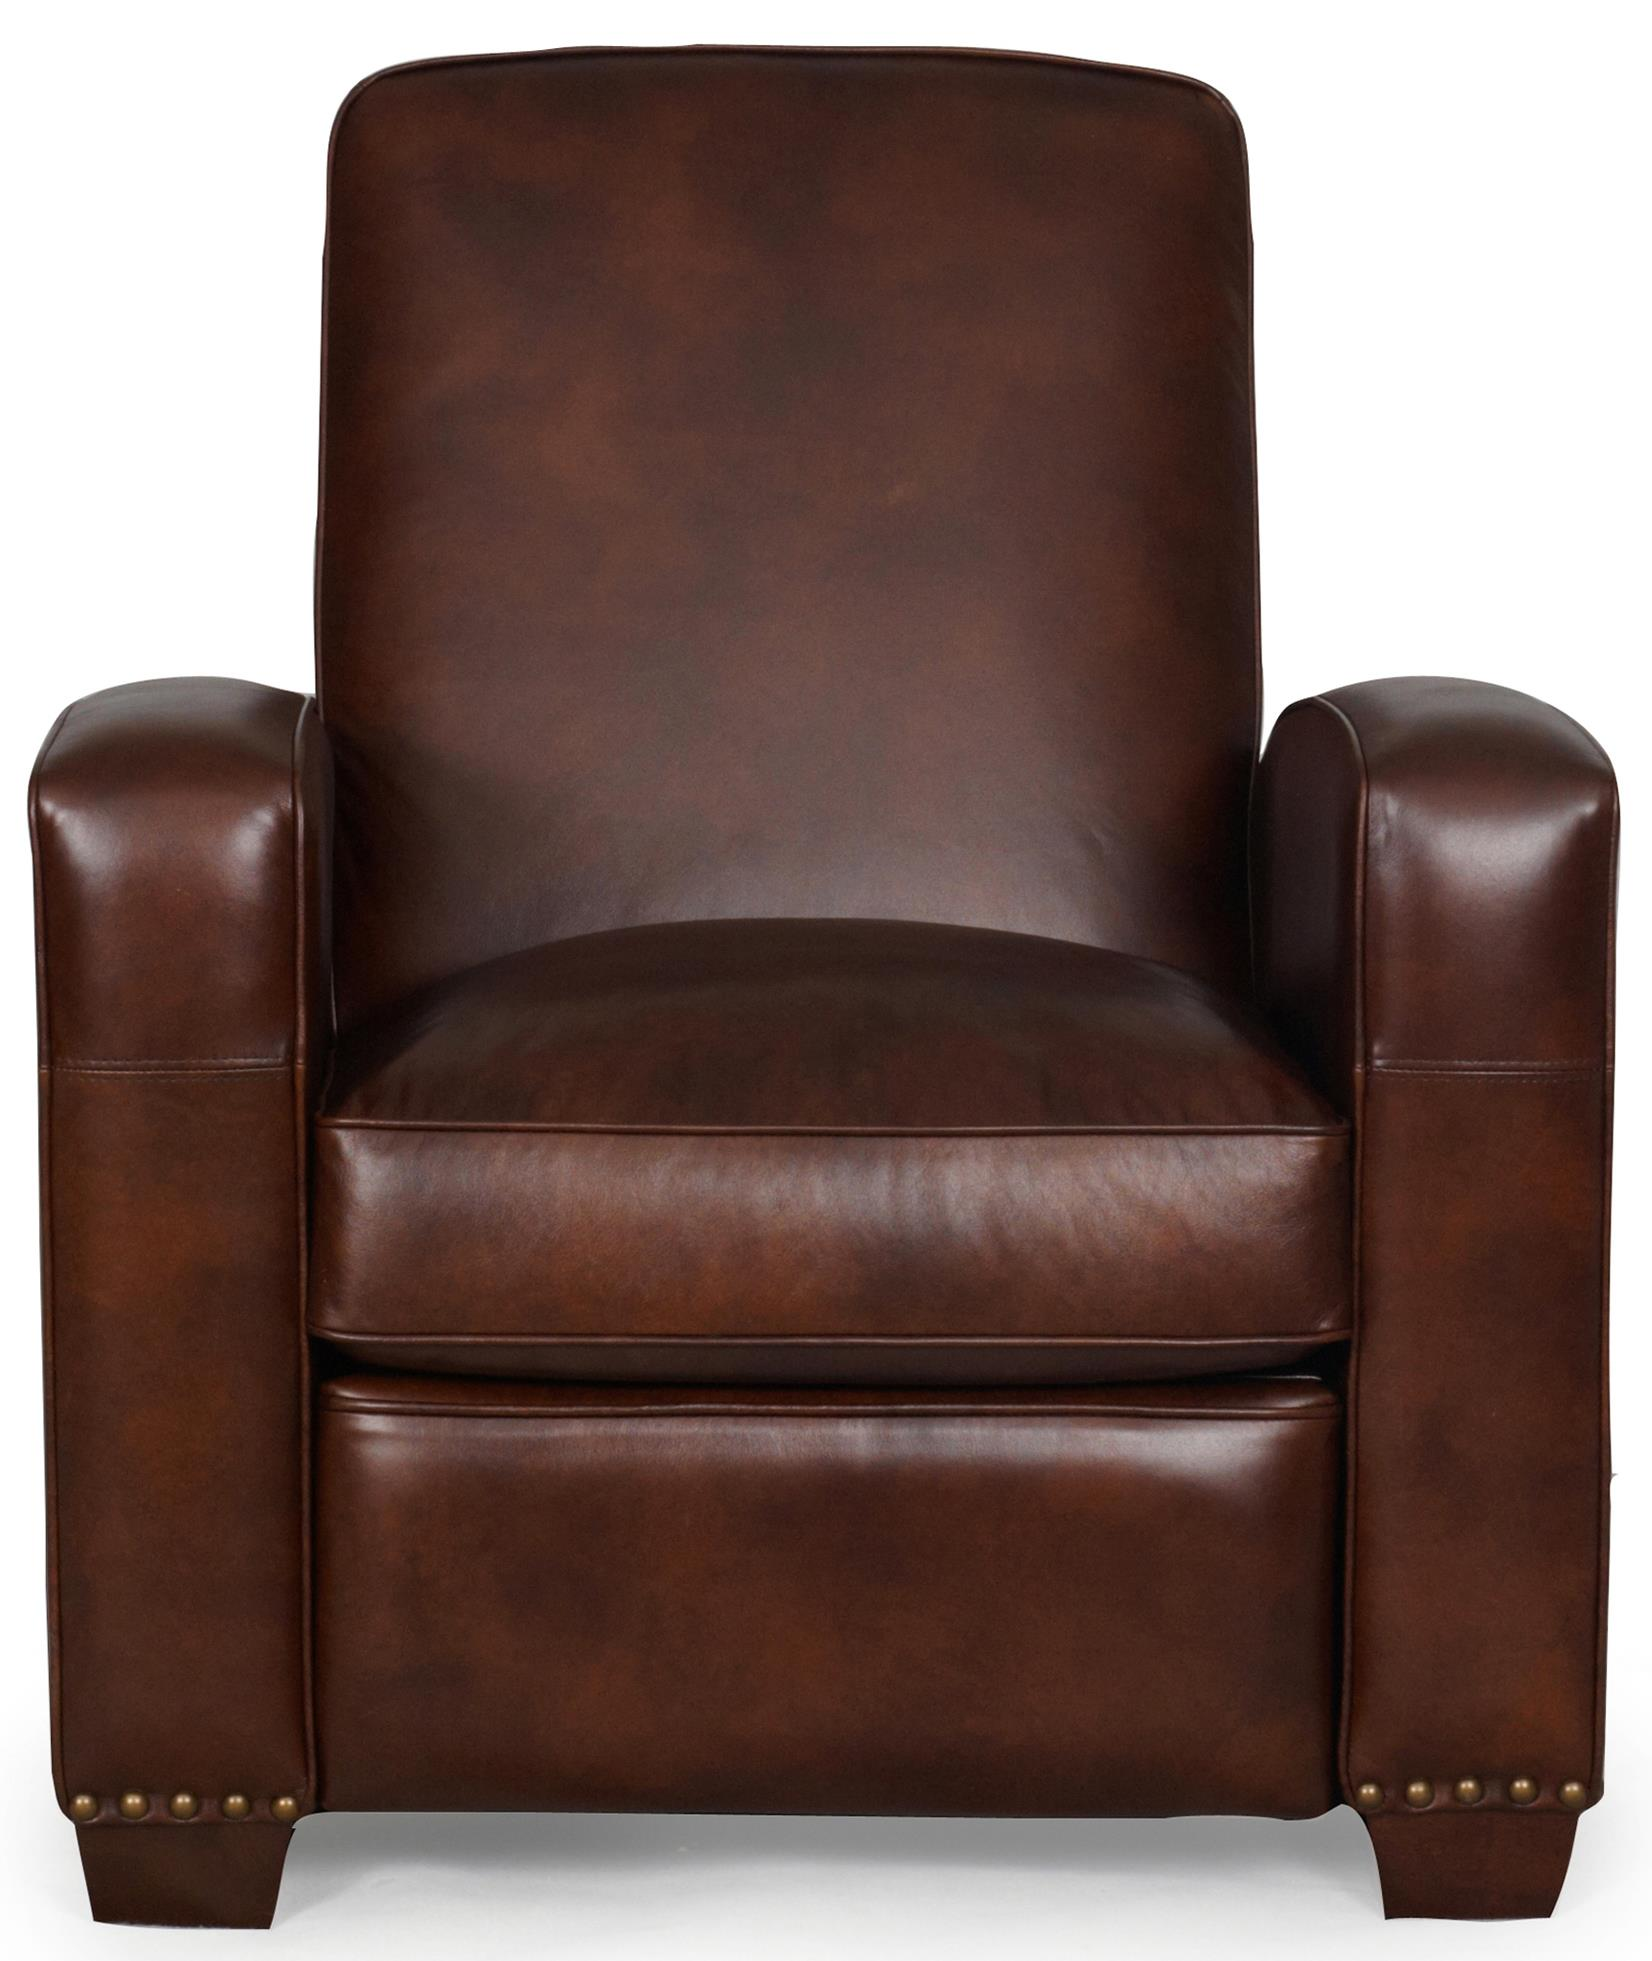 Synergy Home Furnishings 1265 3-Way Power Recliner - Item Number: 1265-86pwr-Barstow Saddle